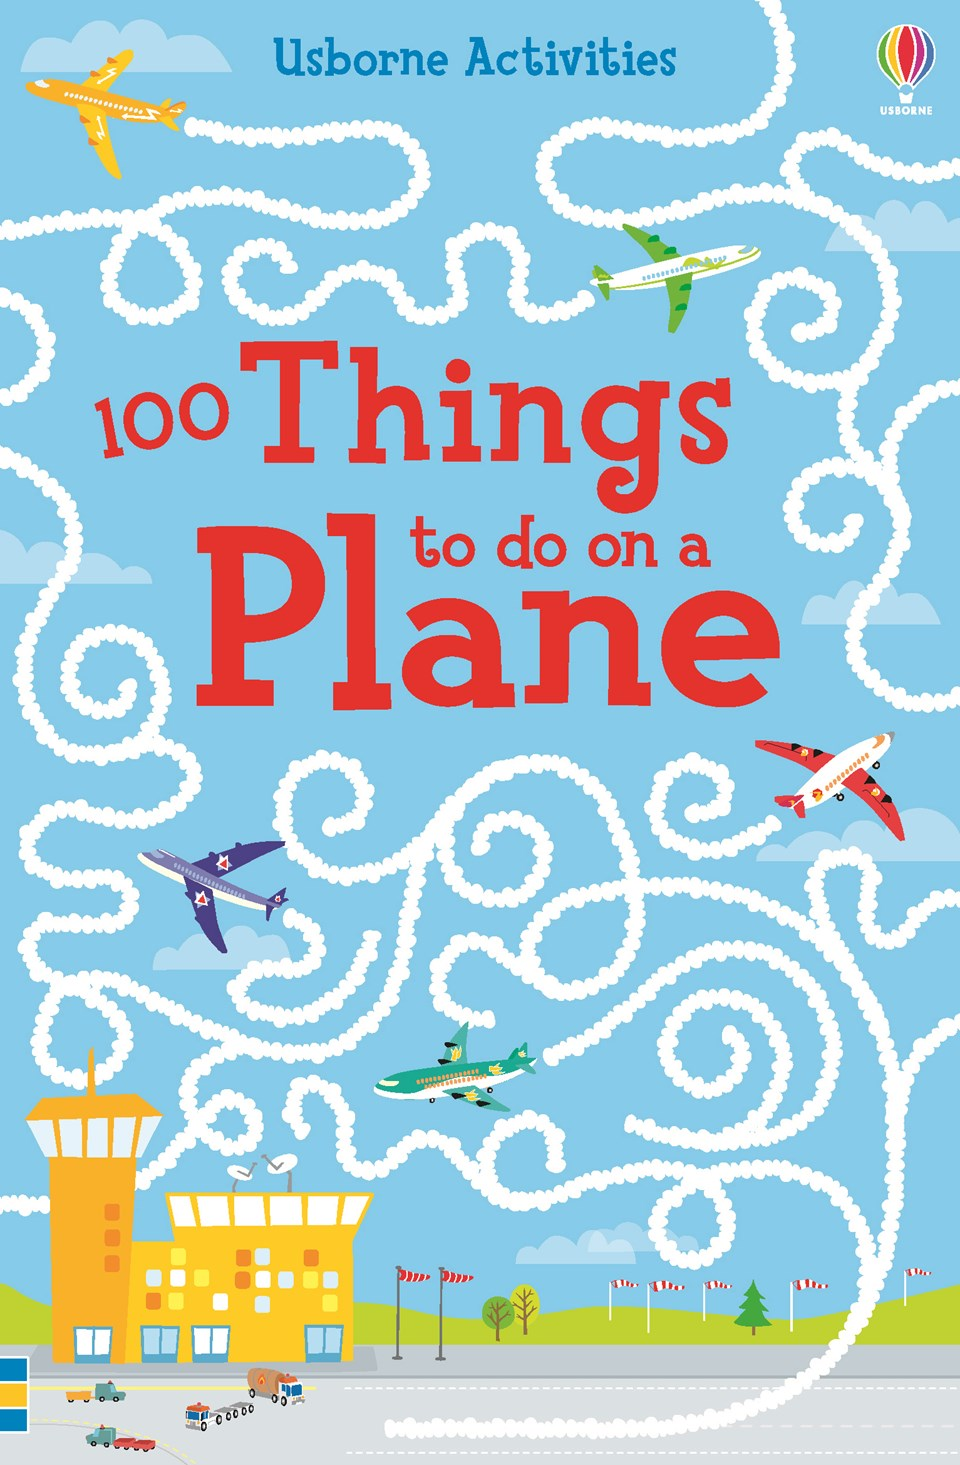 100-things-to-do-on-a-plane